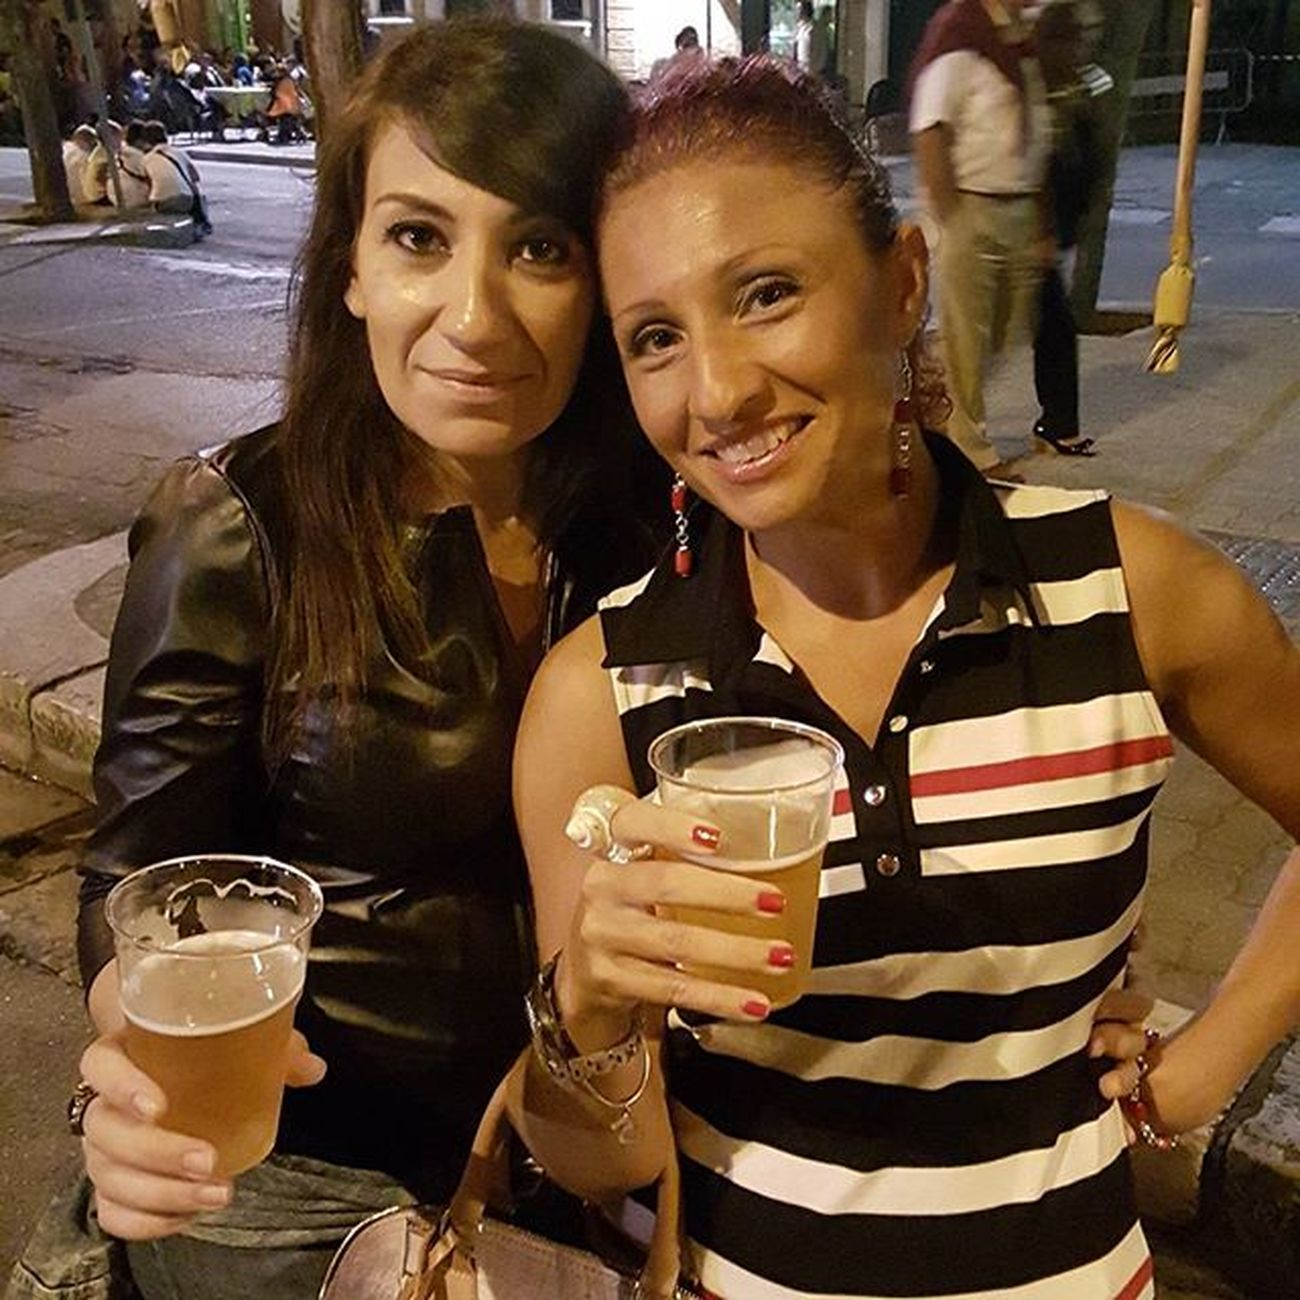 Whitenight Nottebianca  Friends Nightwithfriends Beertime Italy Nighttime Puglia Italia Italy Southernitaly Provinciadifoggia Summertime Estate2015 Summer2015 Agosto2015 August2015 SummerNights